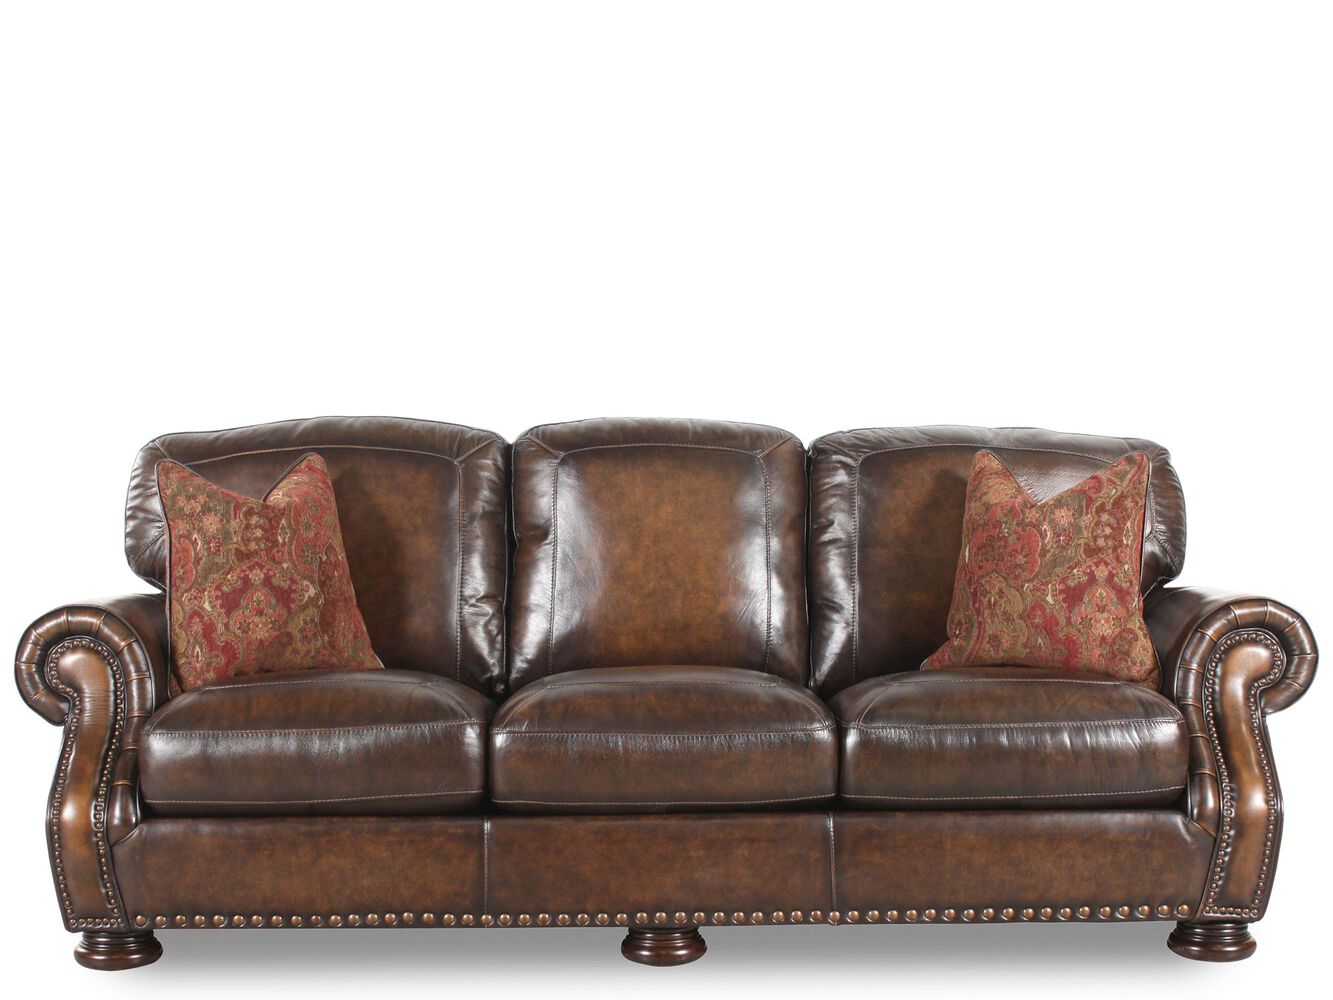 Simon li leather picasso randwick sofa mathis brothers furniture for Mathis brothers living room furniture